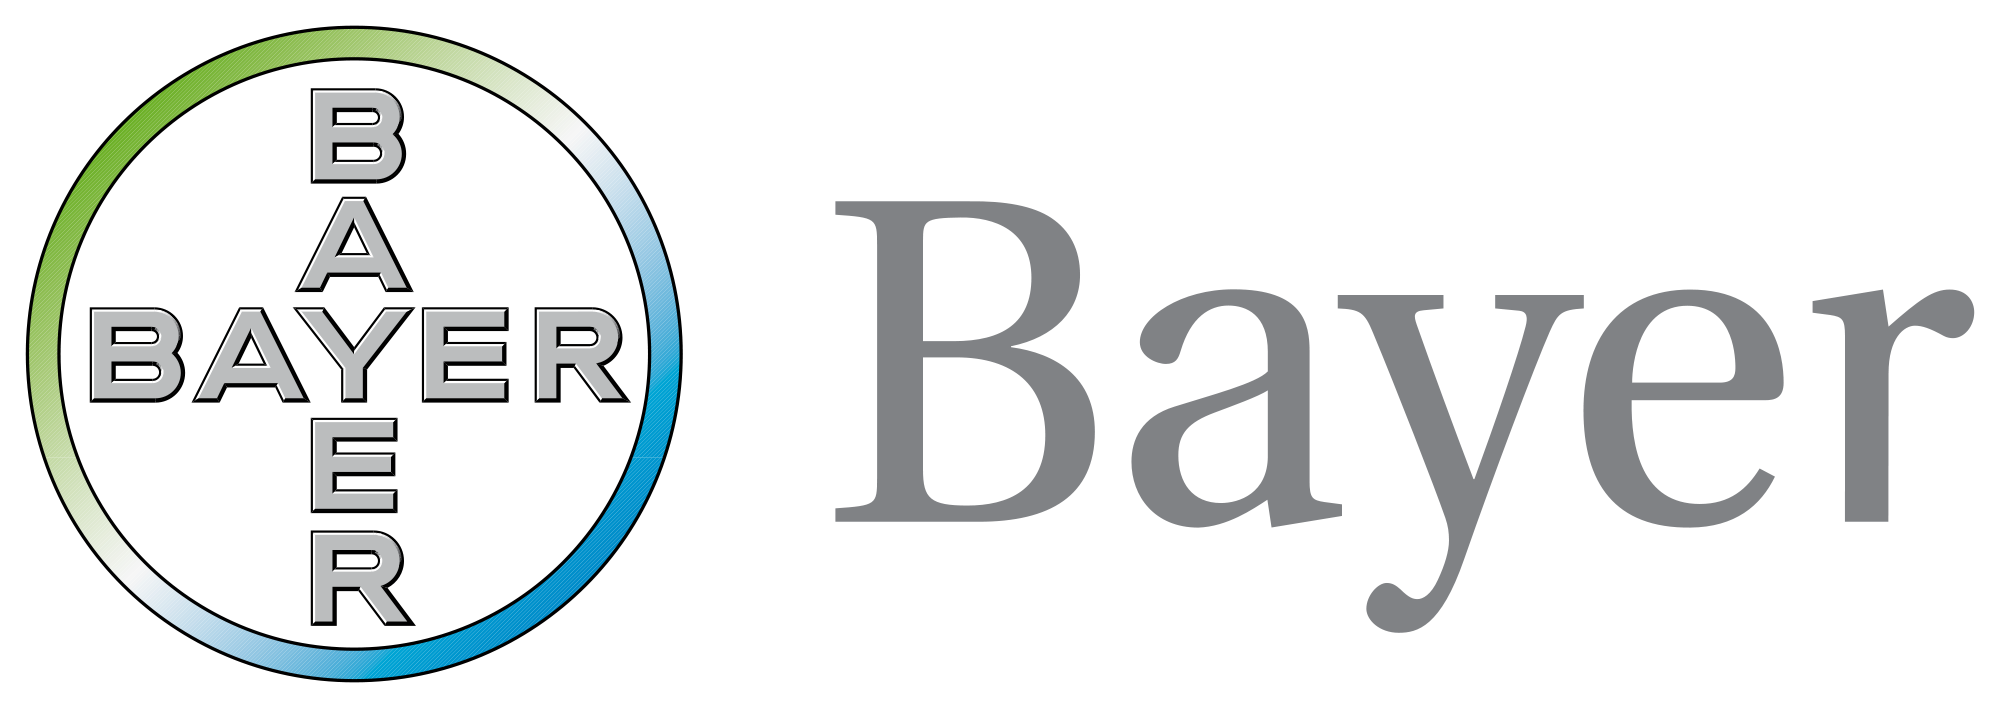 2000px-Bayer_Logo.png